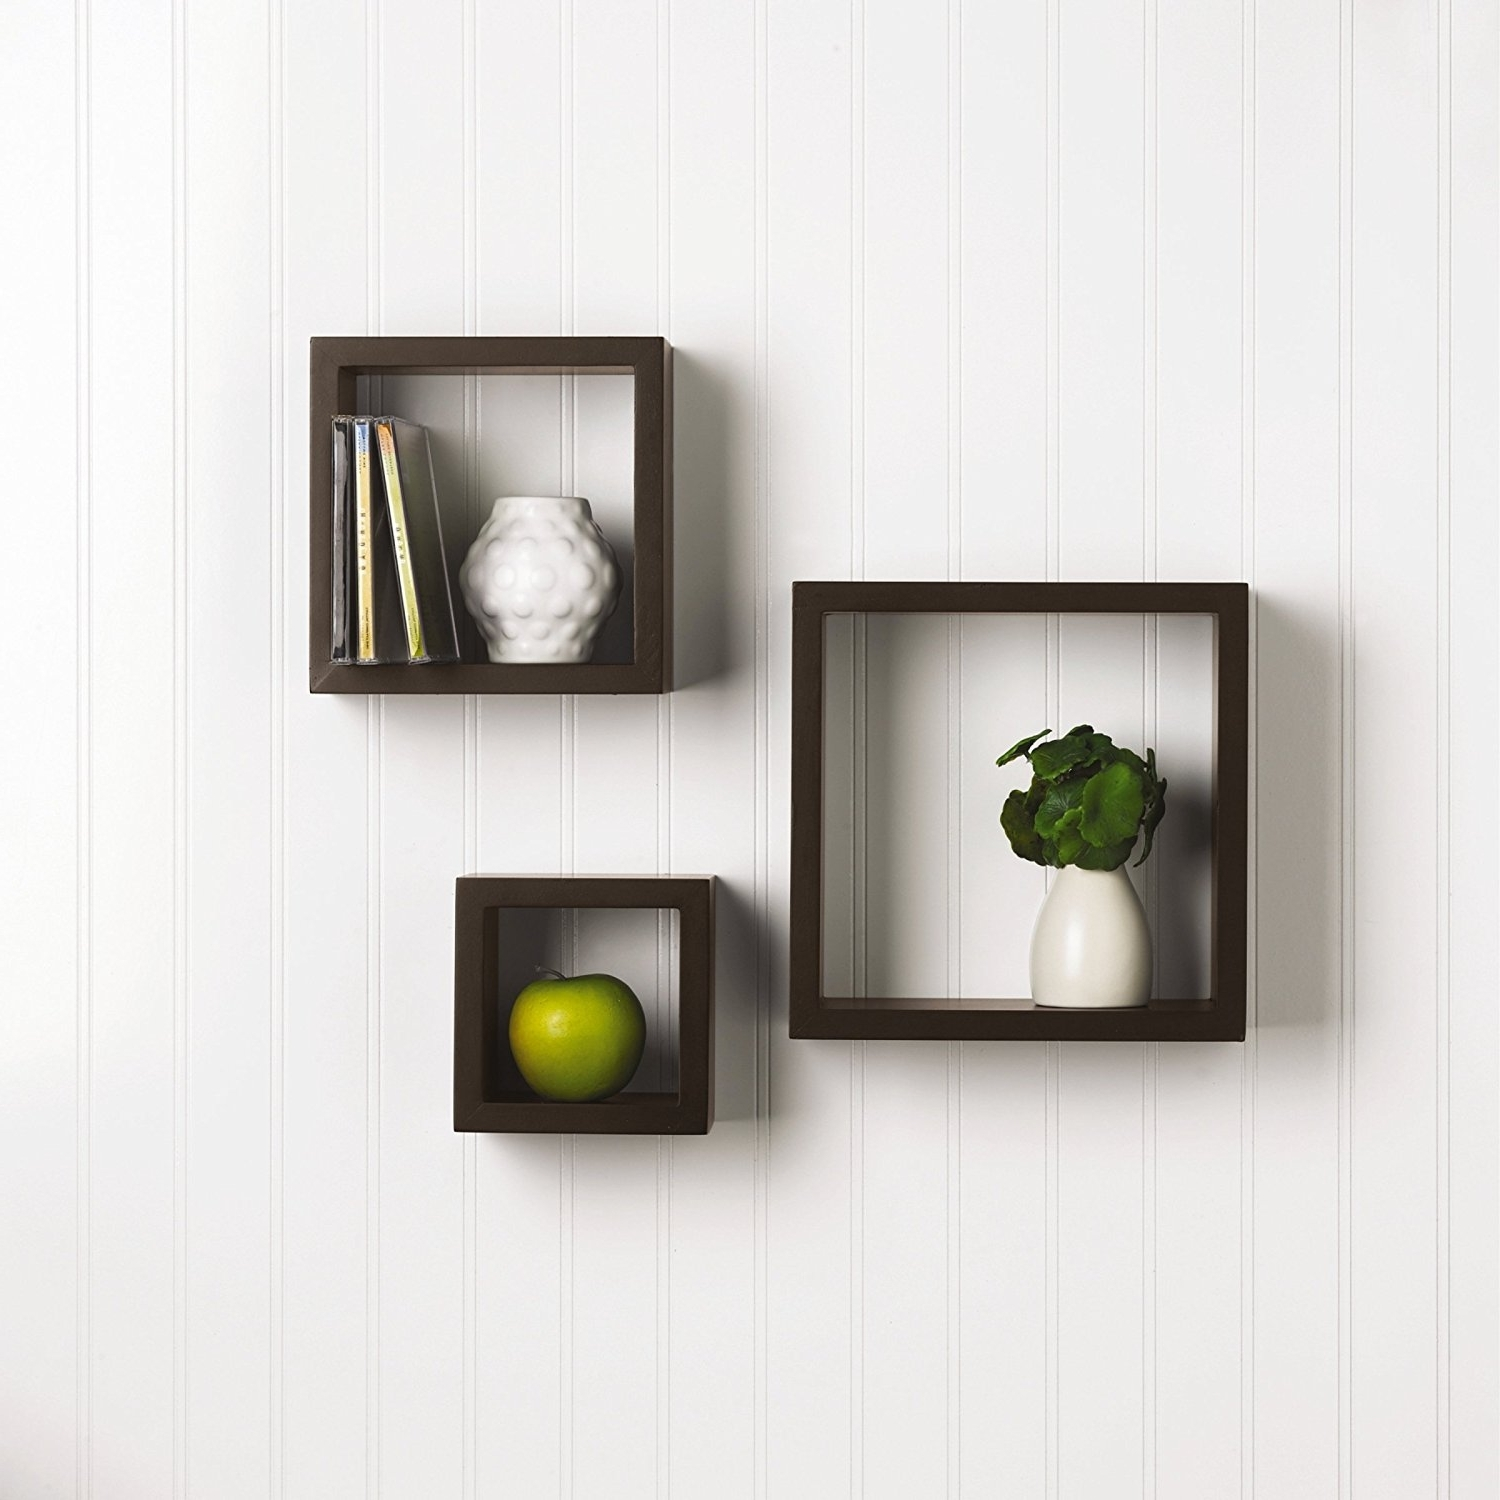 Wooden Wall Shelves Within Most Popular Amazon: Melannco Square Wood Shelves, Set Of 3, Espresso: Home (View 3 of 15)